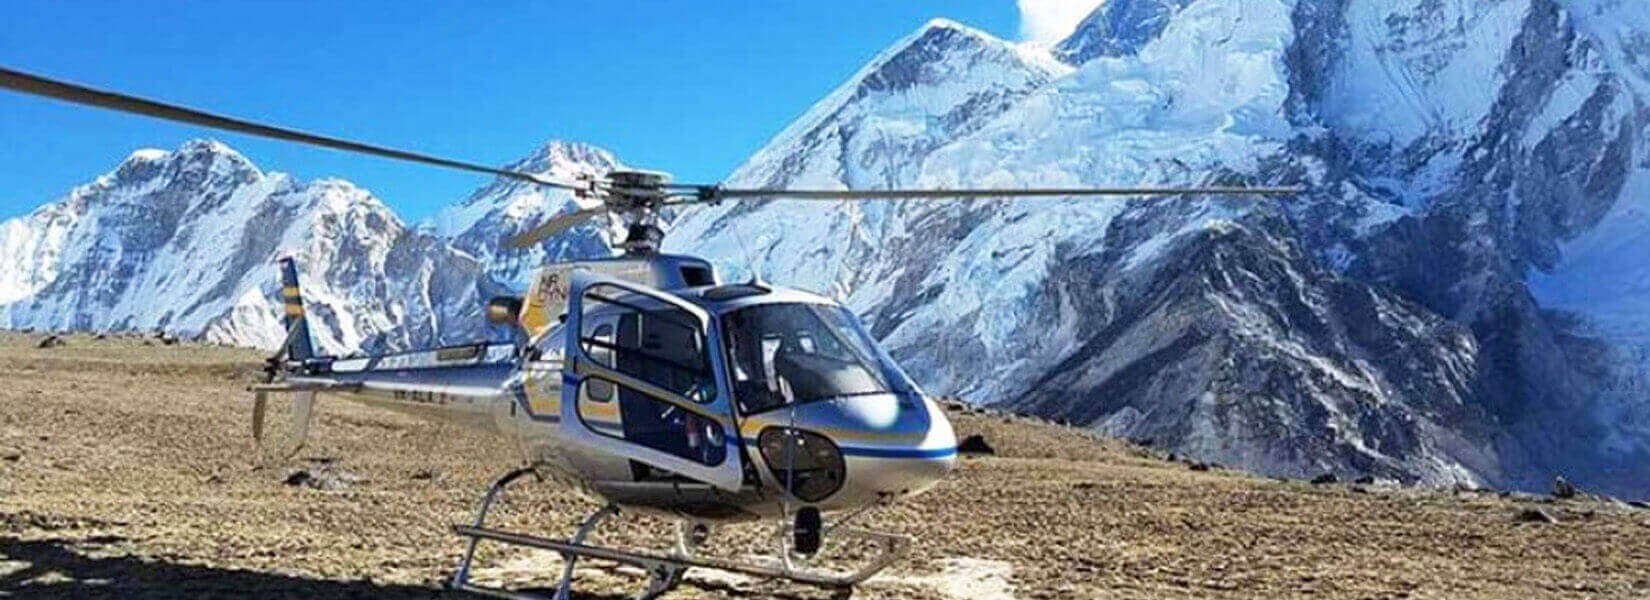 Everest base camp heli tour